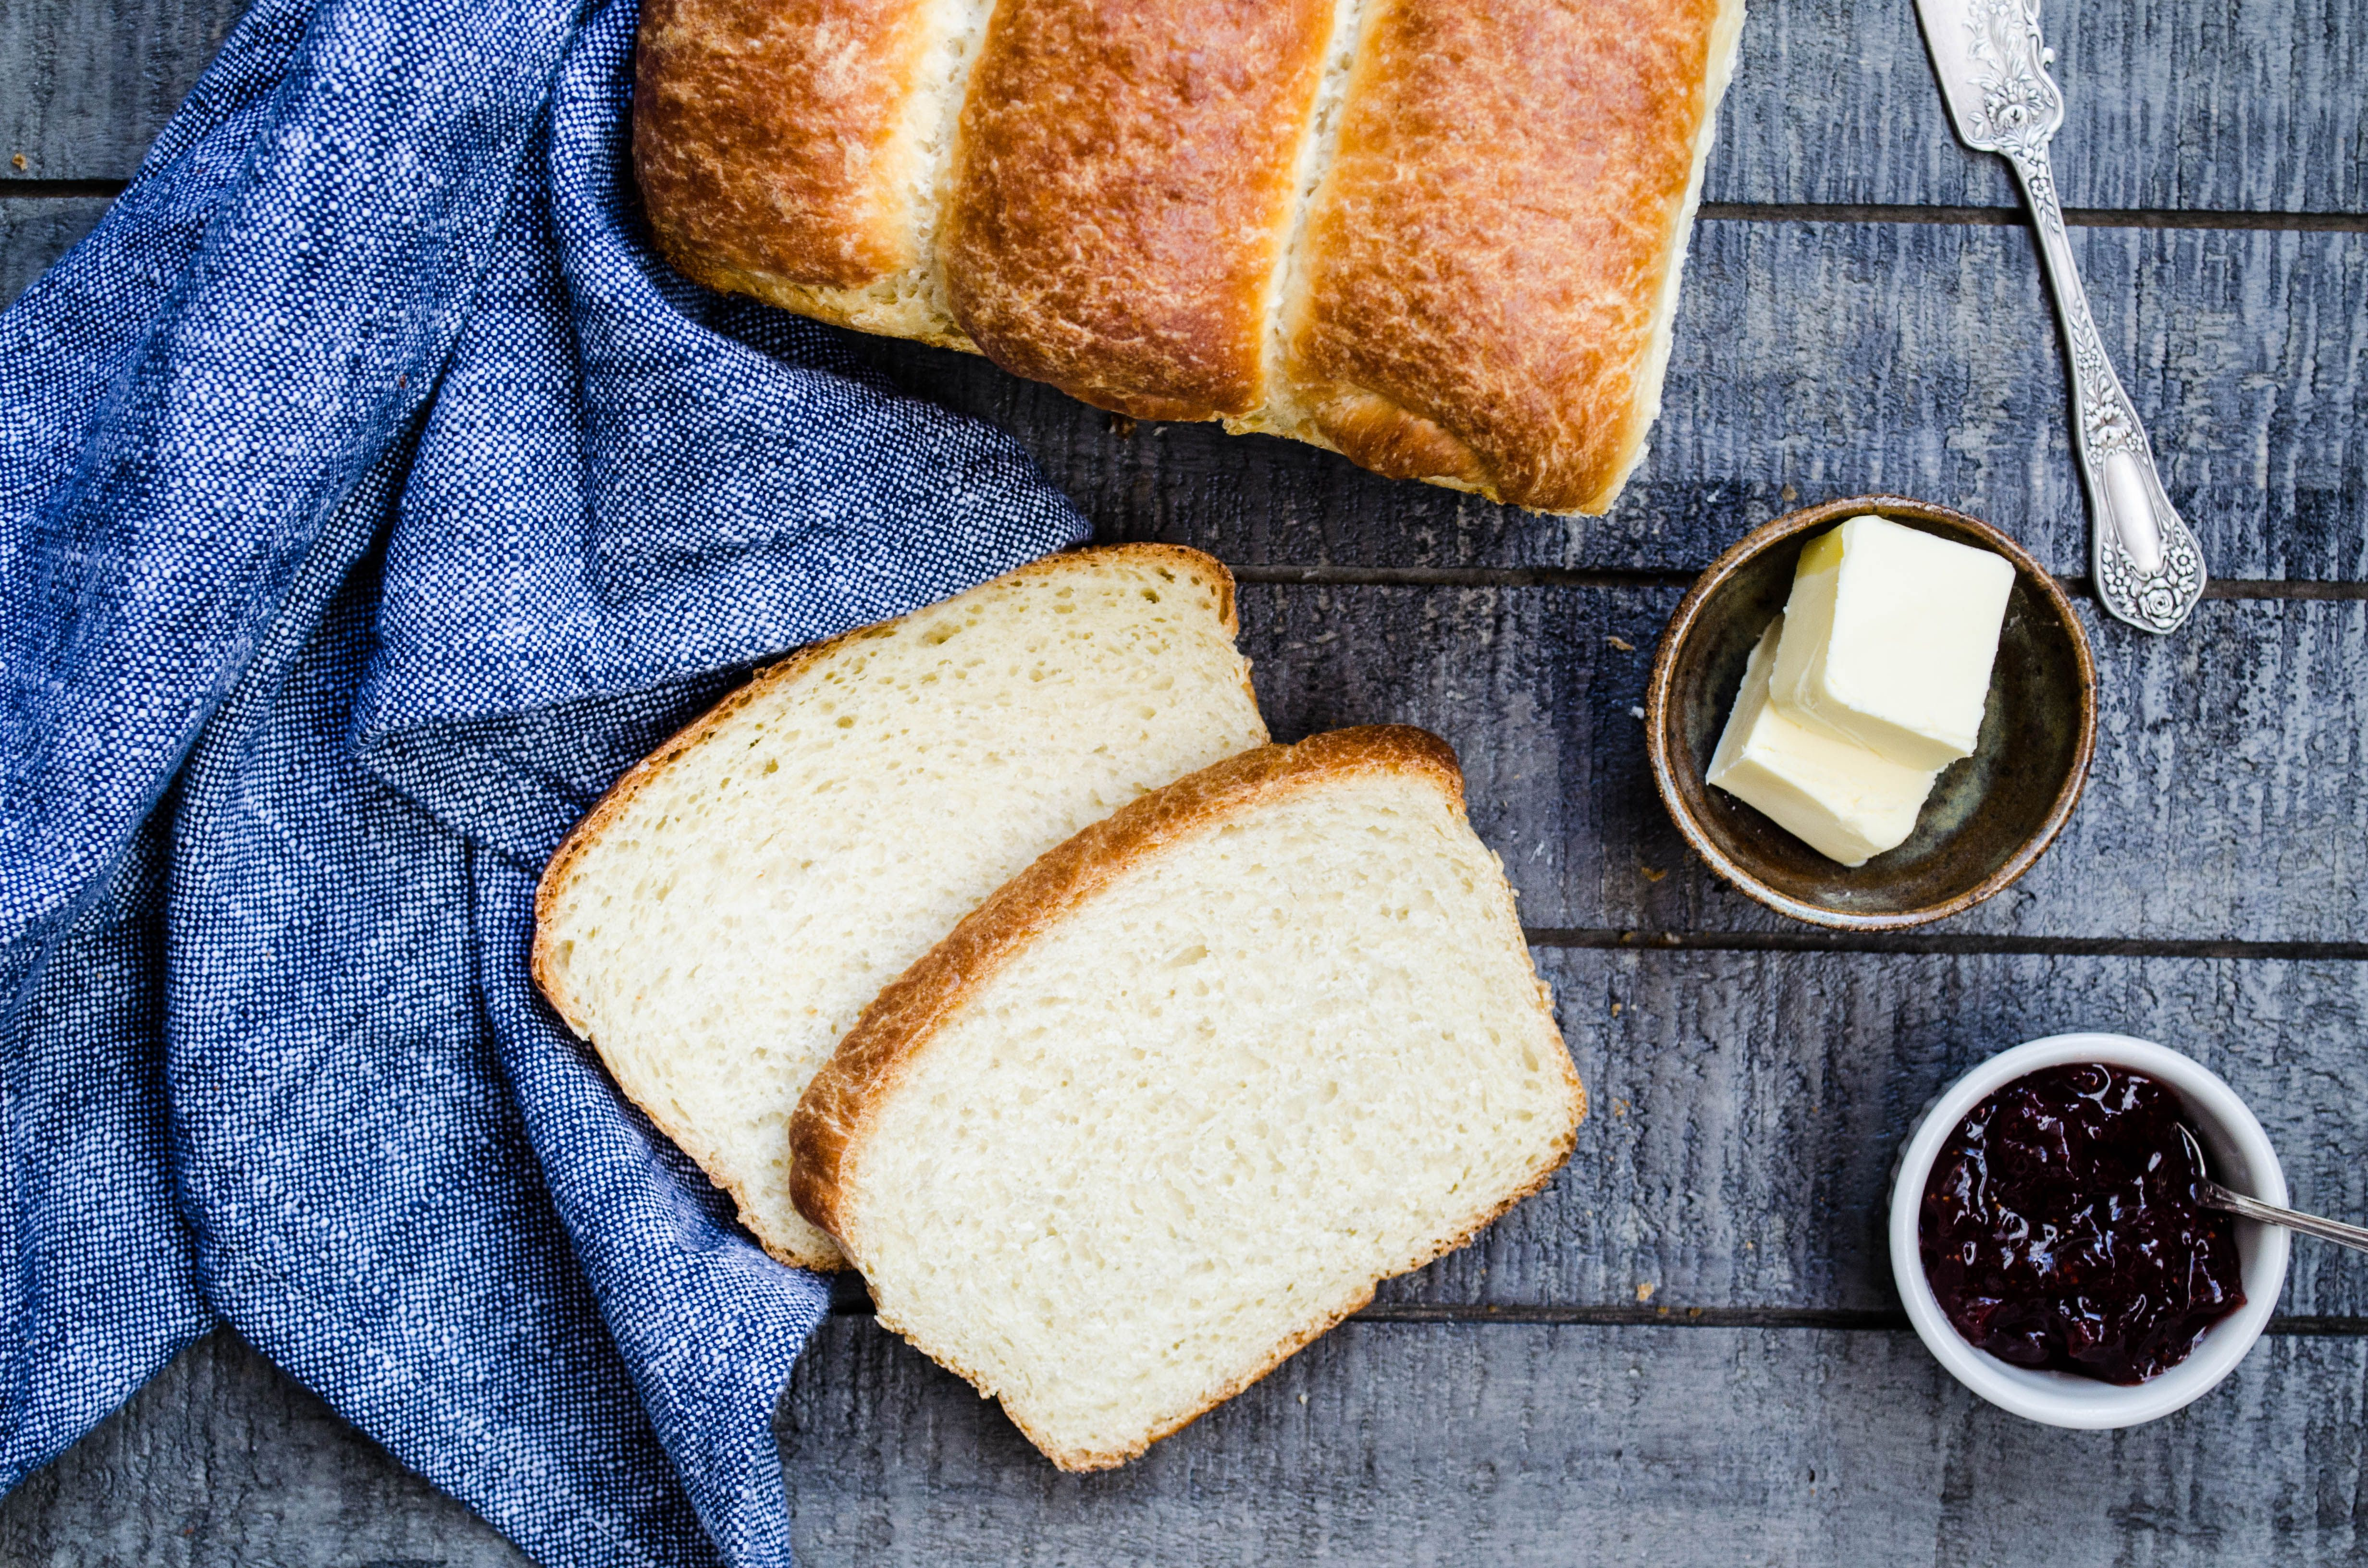 Japanese Milk Bread Is Pure Fluffy, Pillowy Goodness